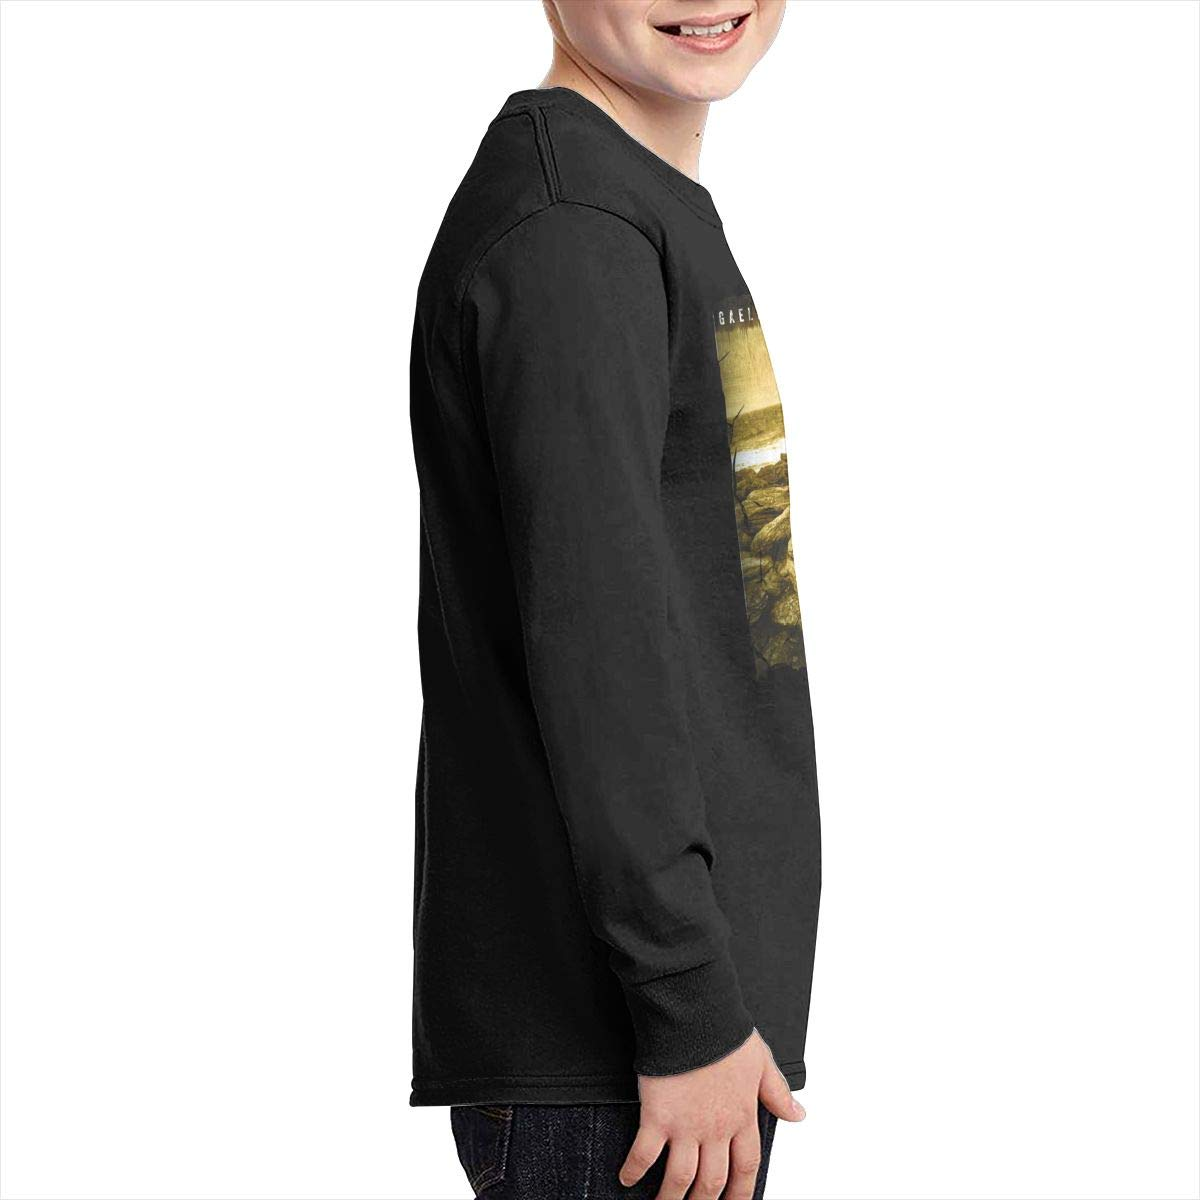 MichaelHazzard Gaelic Storm Youth Wearable Long Sleeve Crewneck Tee T-Shirt for Boys and Girls